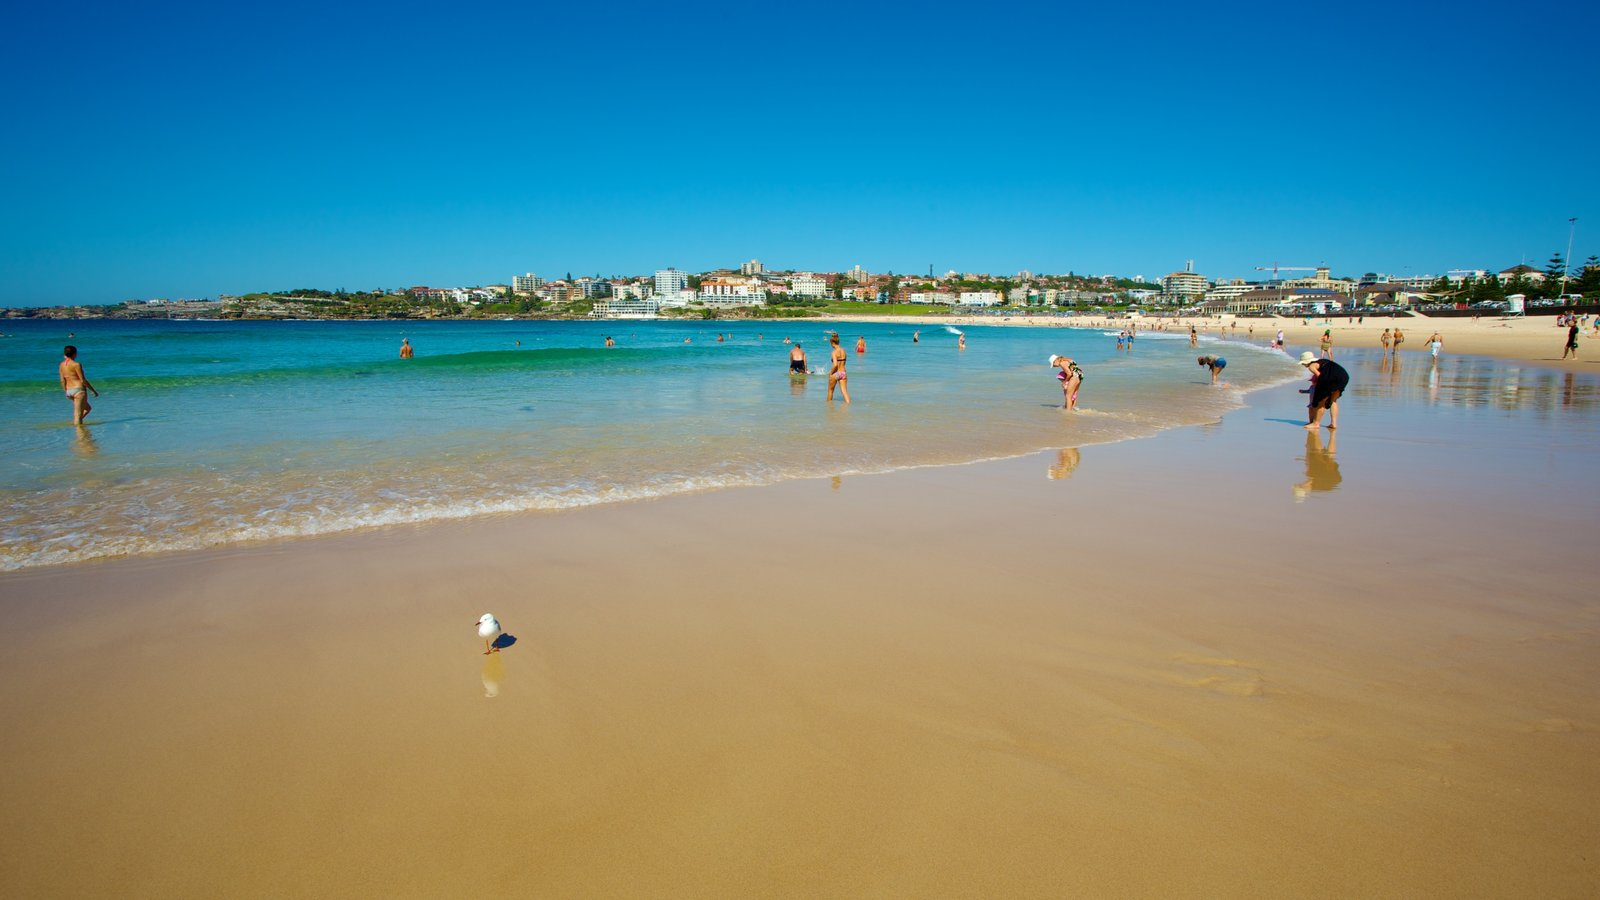 Sydney showing swimming and a beach as well as a large group of people